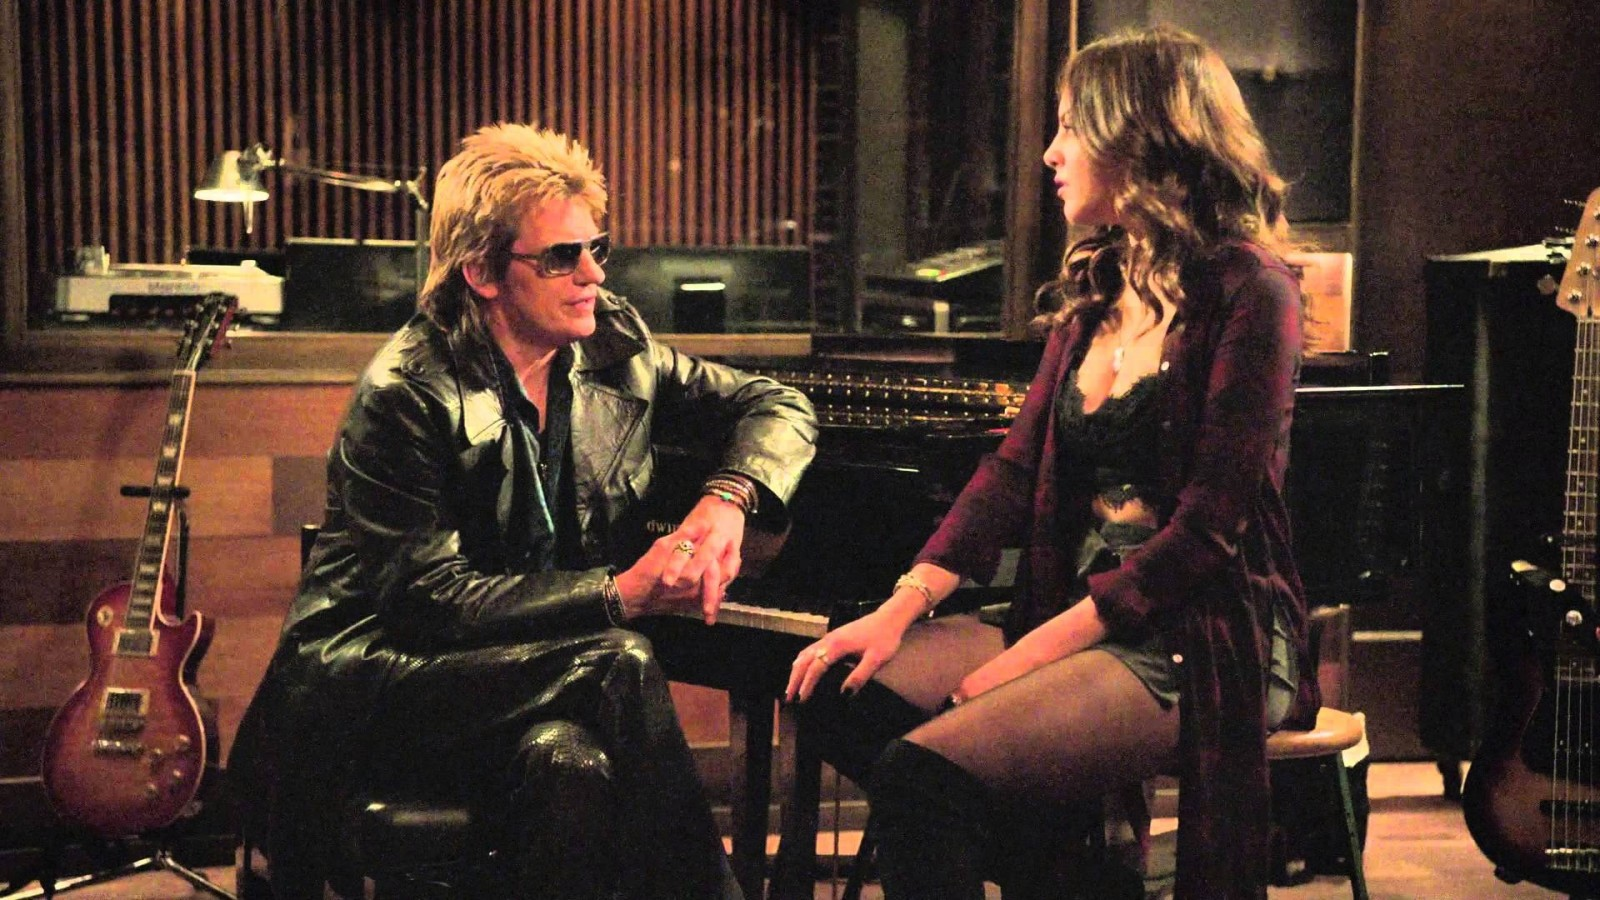 Denis Leary's new show about sex, drugs, and rock and roll. And it looks GREAT.